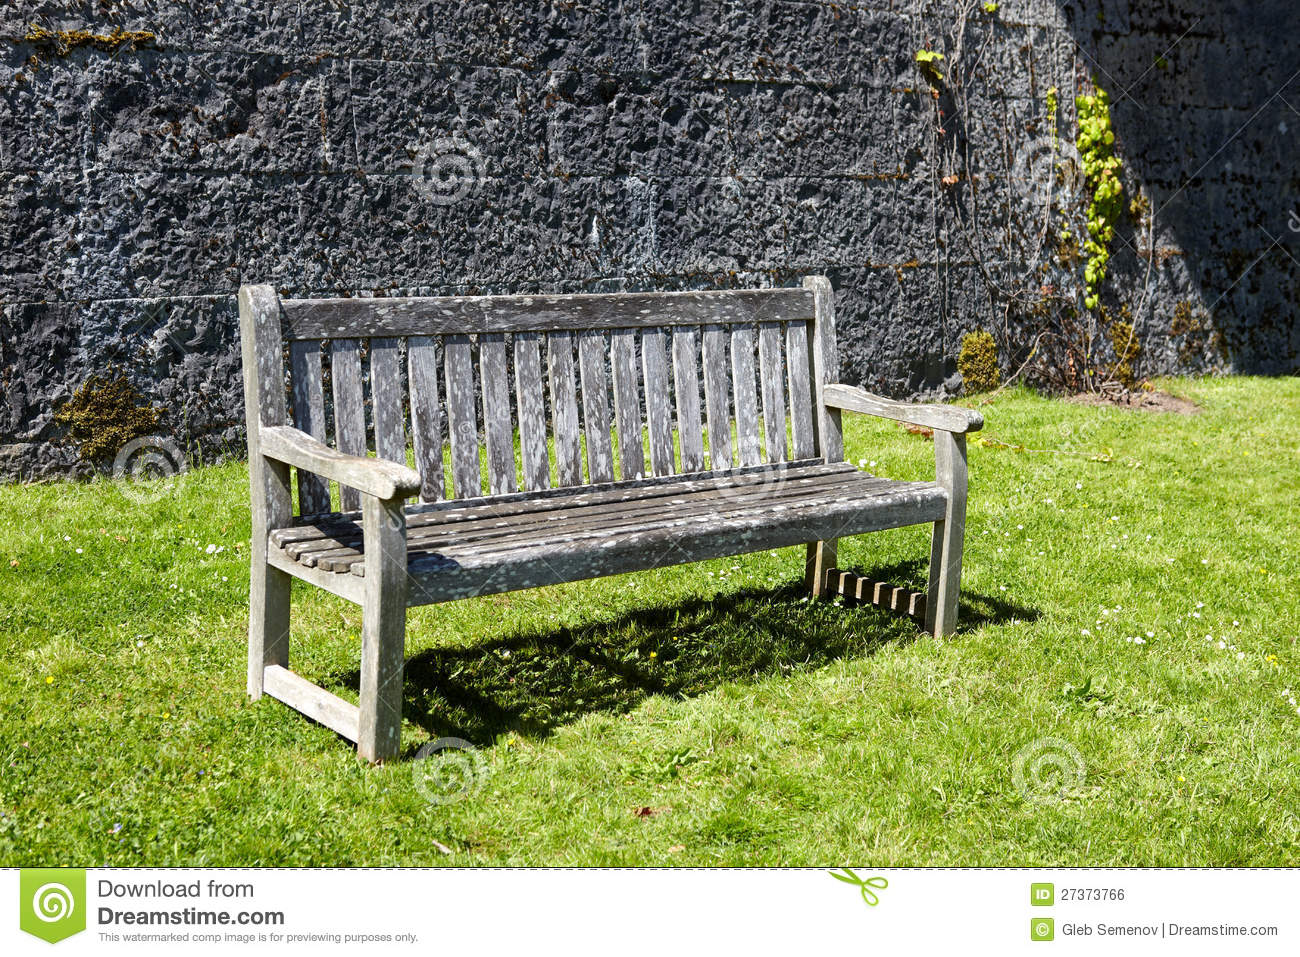 Vintage Wooden Garden Bench Royalty Free Stock Image - Image: 27373766